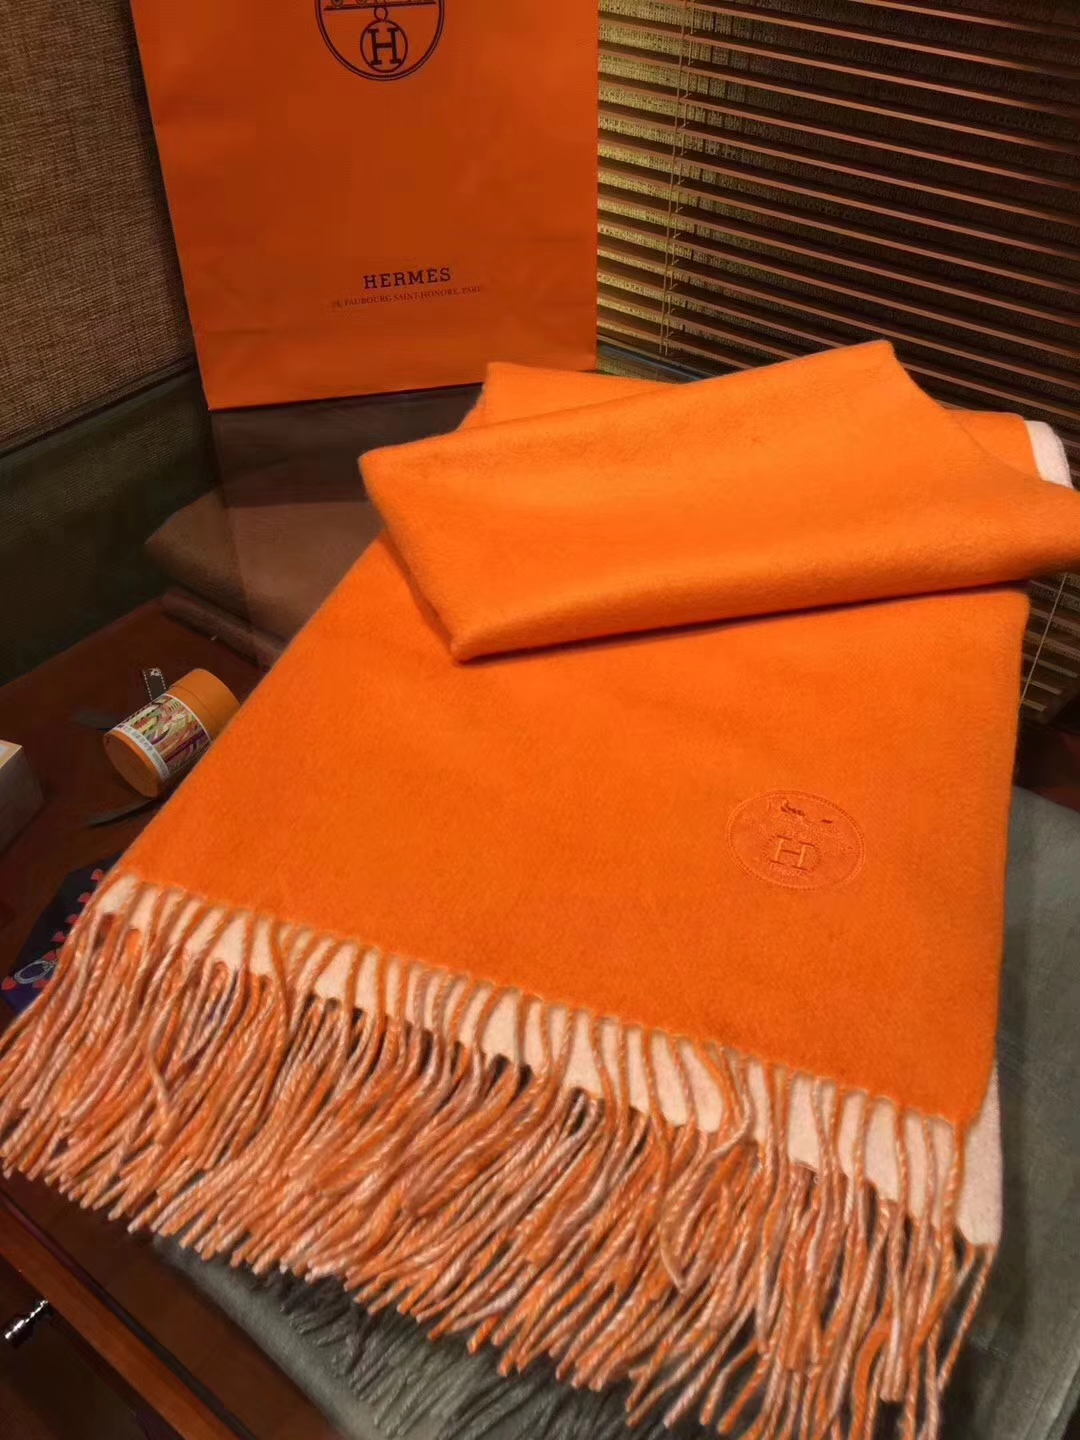 High Quality Hermes 100% Cashmere Women's Scarf Cape in Orange71*210cm